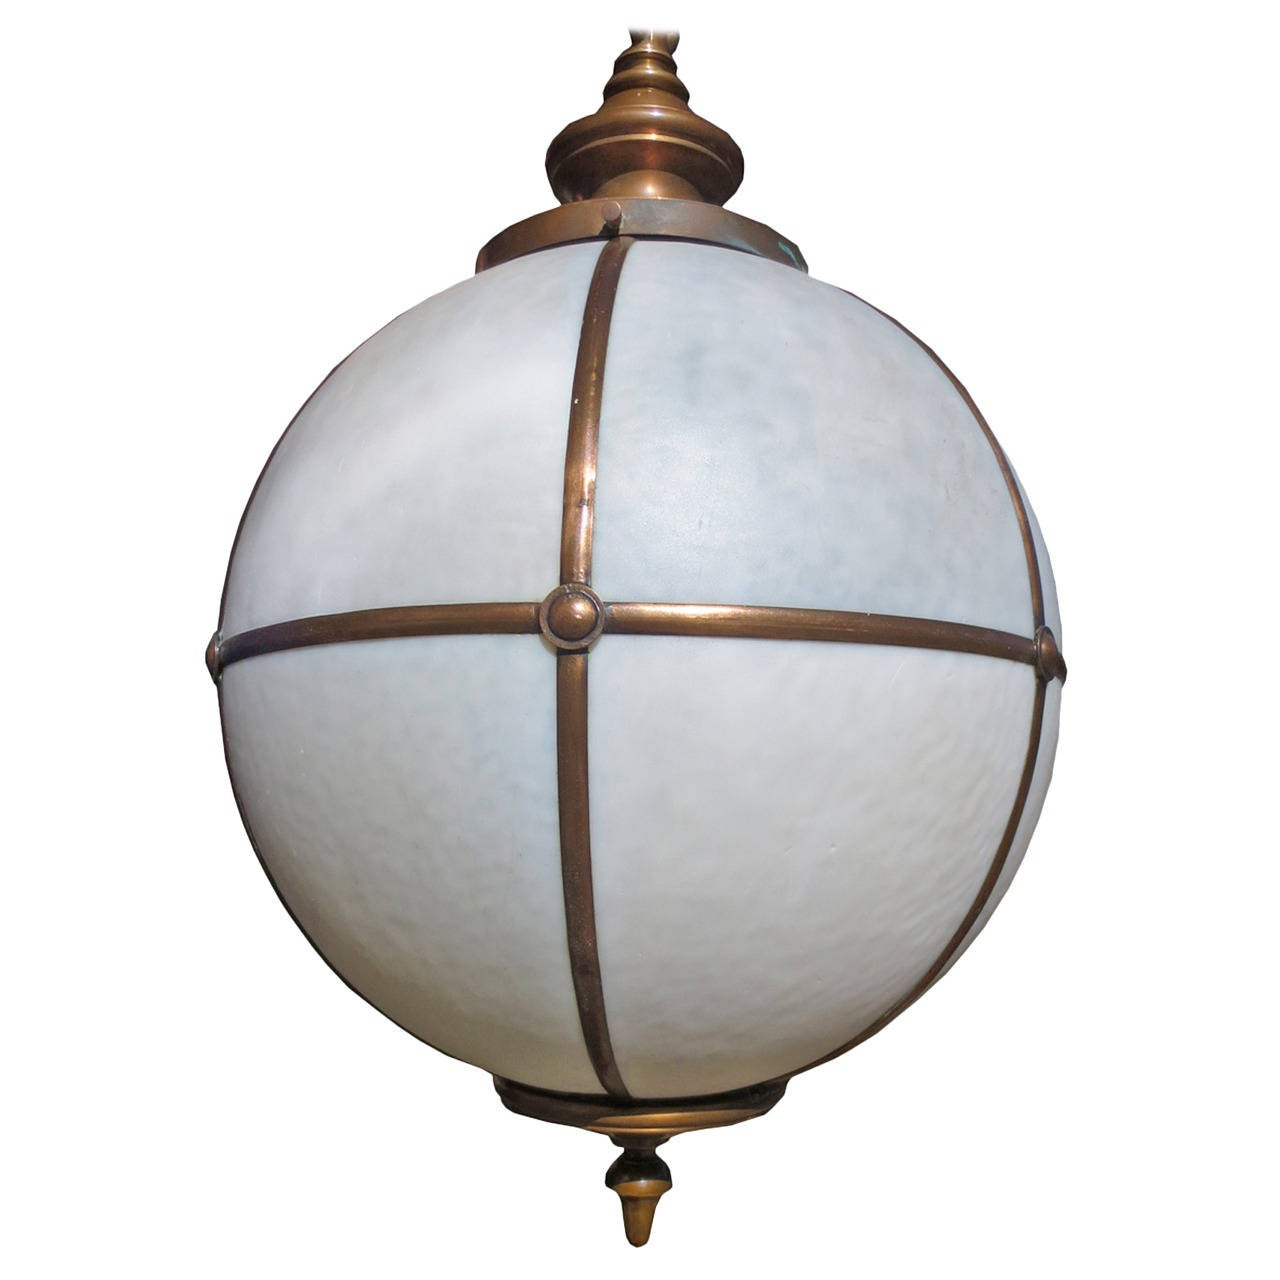 Hanging Light Fixture: Early 20th Century Large Globe Form Hanging Light Fixture